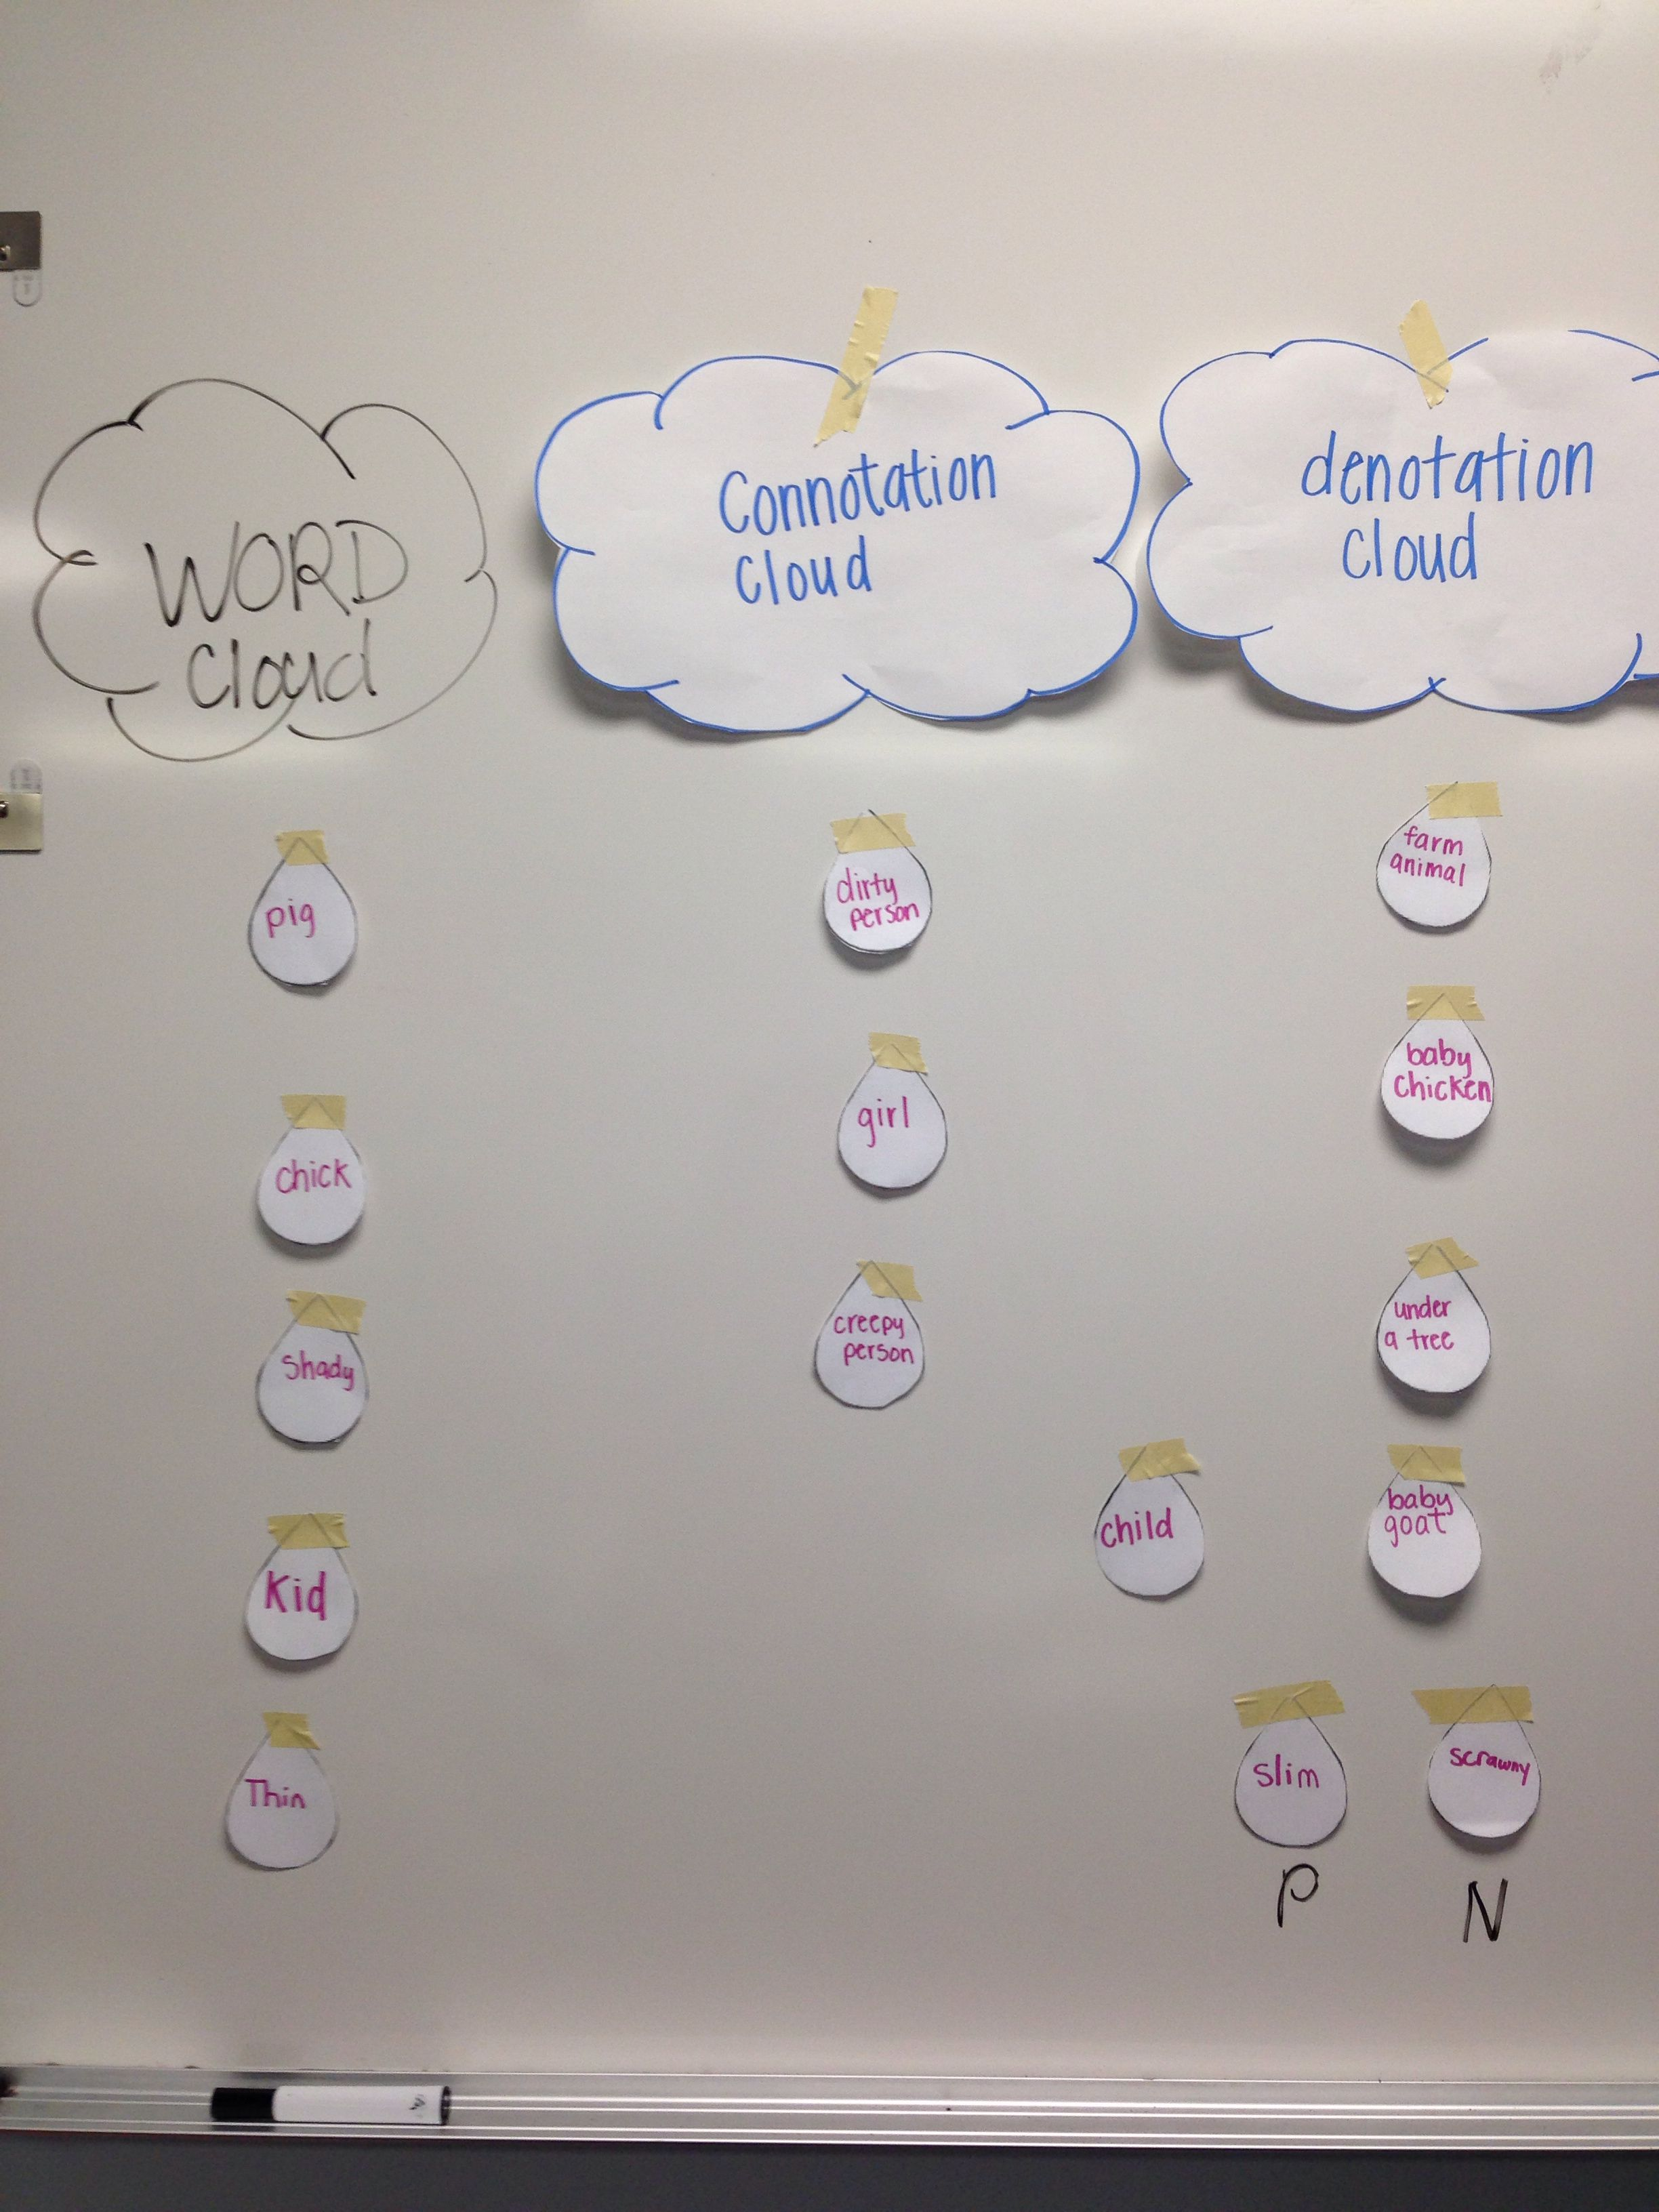 Connotation And Denotation Clouds Great Activity For Ell S To Practice Semantics And For All